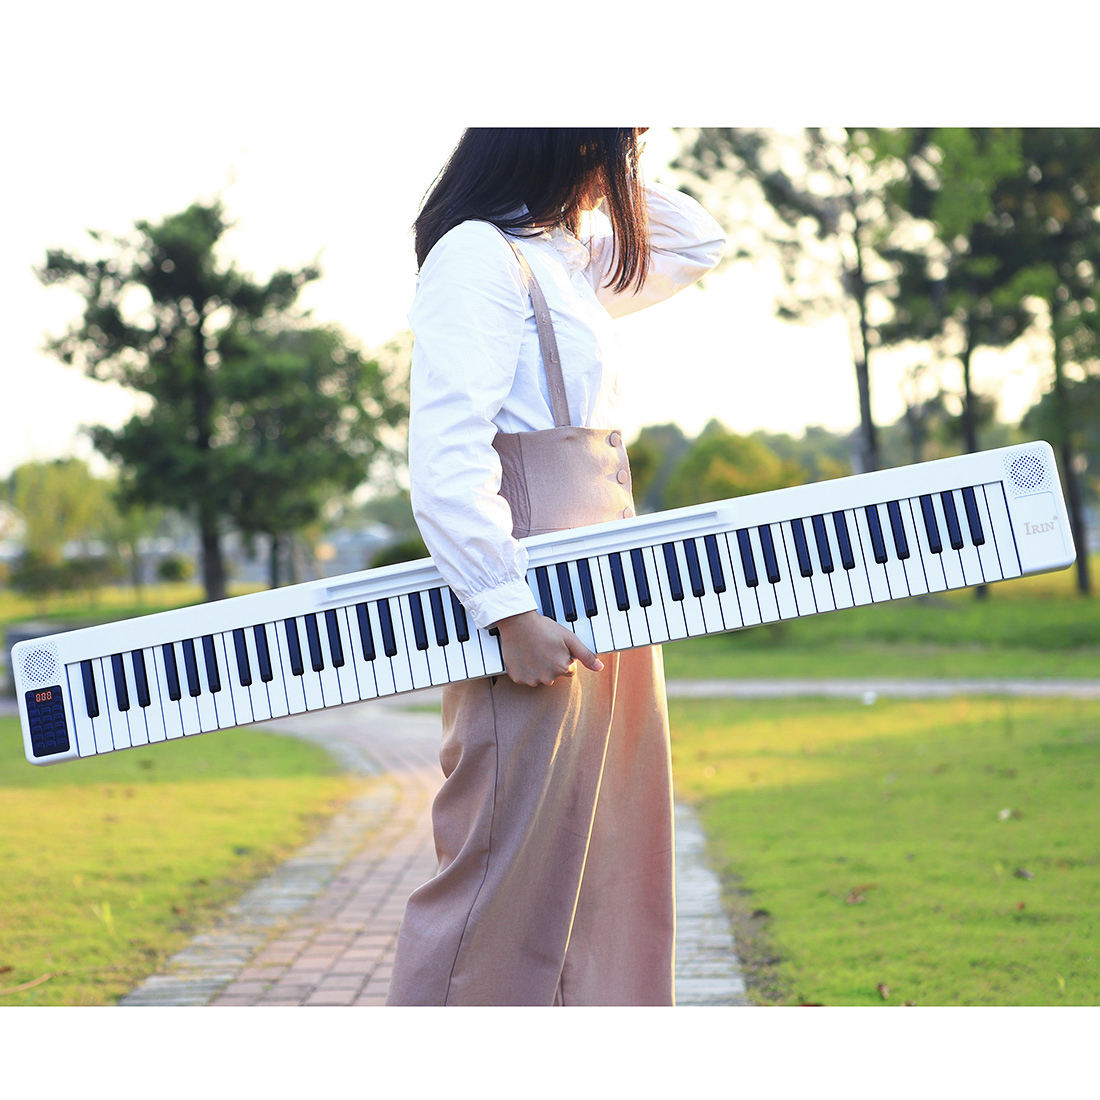 Wholesale IRIN Hot sale digital music instrument 88 keys white black Portable fold splicing piano organ electronic keyboard